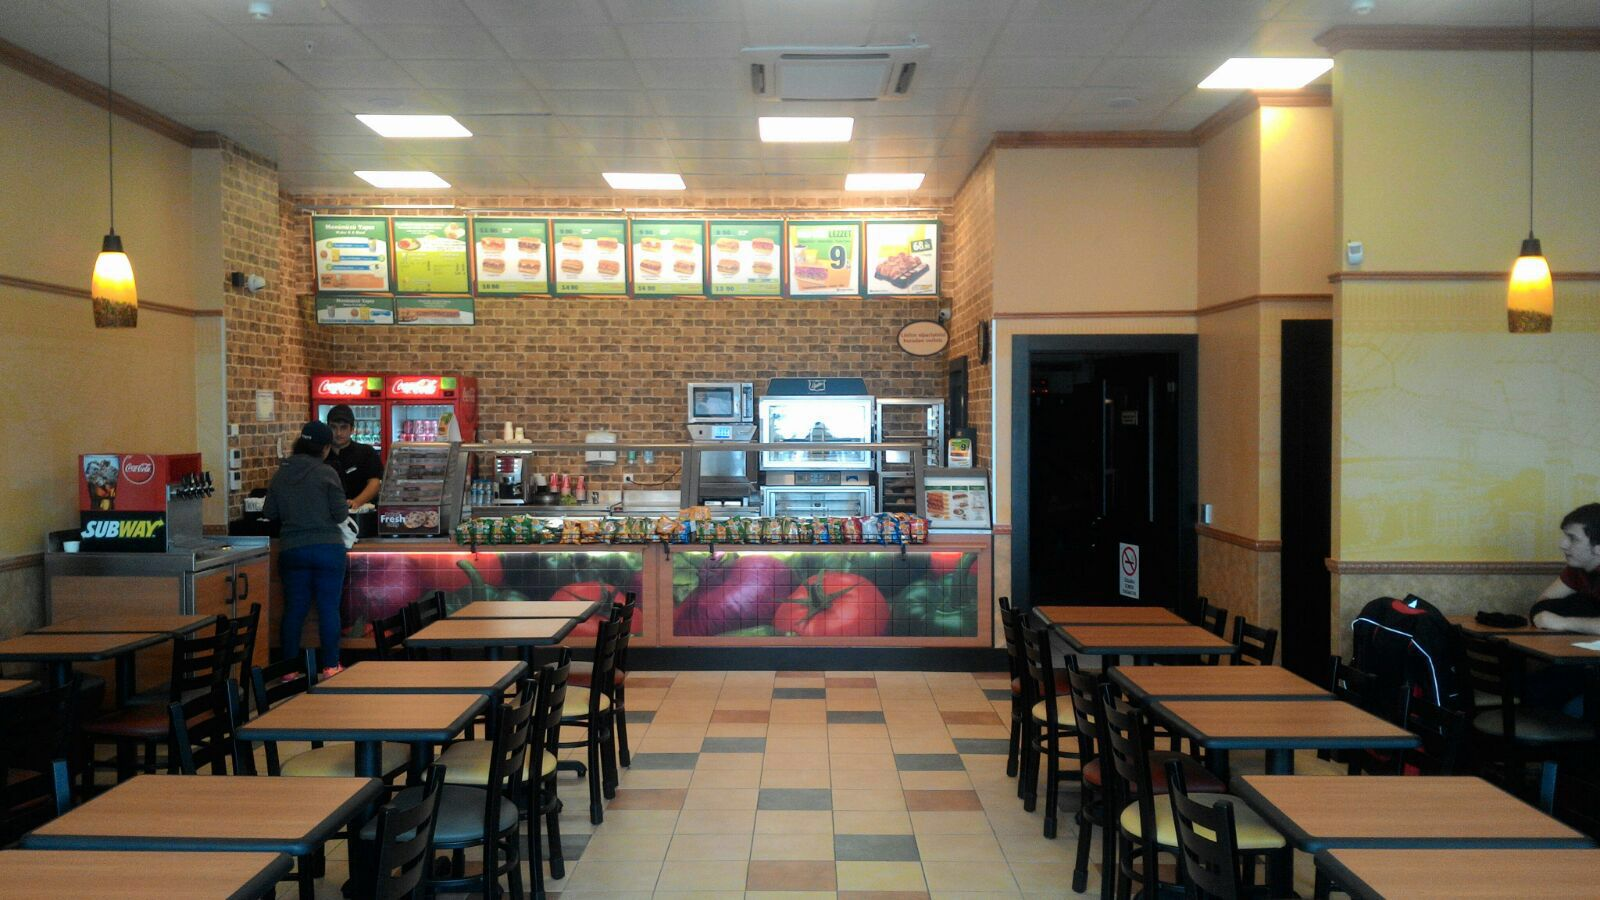 Subway Arsia 10